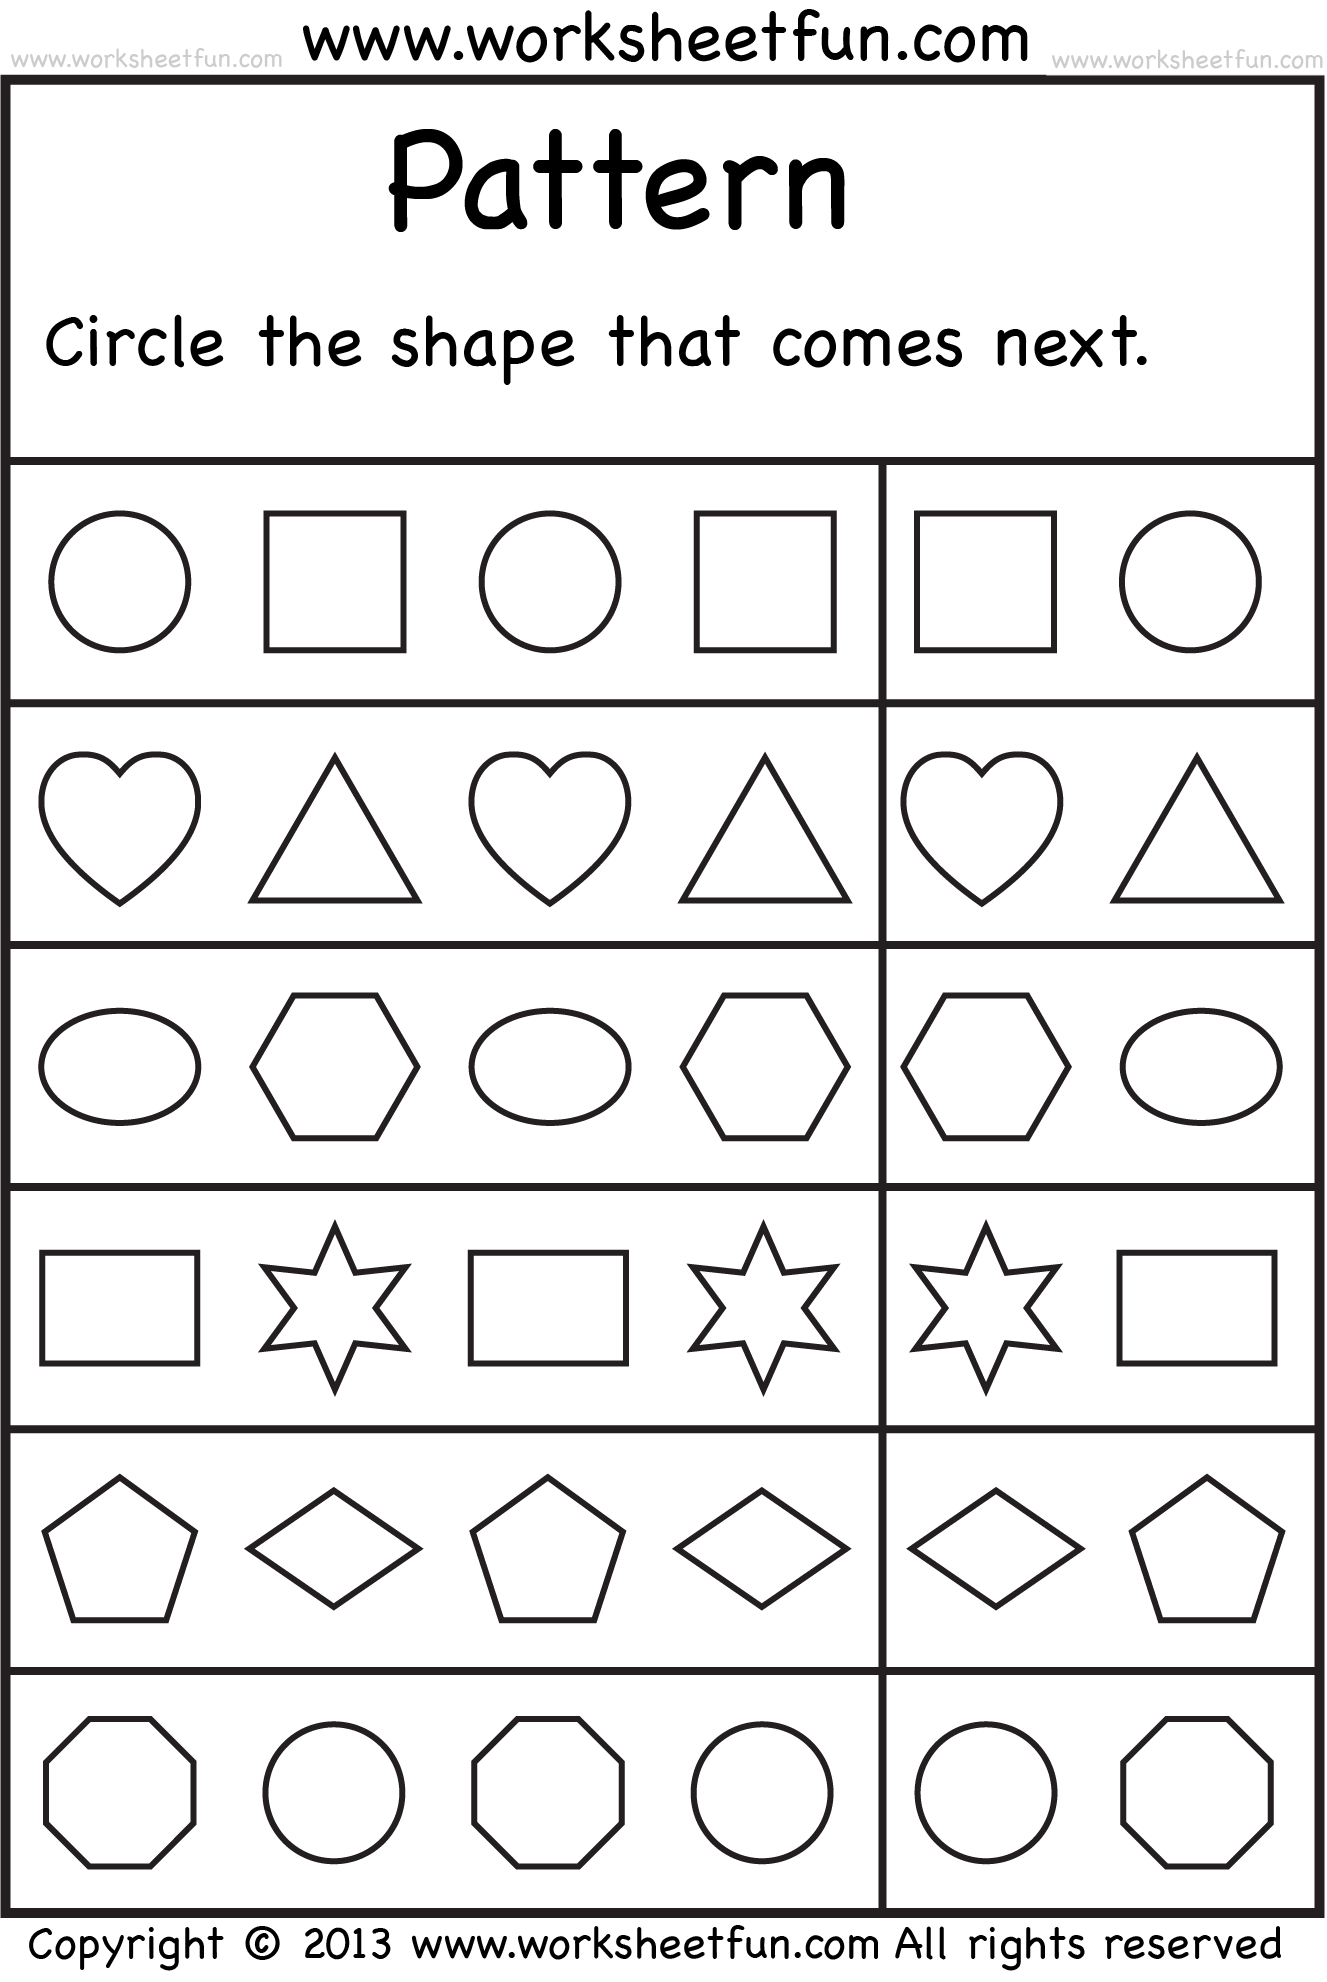 Weirdmailus  Stunning  Images About School Worksheets On Pinterest  Number Words  With Extraordinary  Images About School Worksheets On Pinterest  Number Words Alphabet Worksheets And Free Printable Kindergarten Worksheets With Cute Math Worksheets For Kids Grade  Also Square And Square Root Worksheet In Addition Active And Passive Voice Worksheets With Answers And Facts And Opinions Worksheets As Well As Subtraction Worksheets For Th Grade Additionally Exponent Problems Worksheet From Pinterestcom With Weirdmailus  Extraordinary  Images About School Worksheets On Pinterest  Number Words  With Cute  Images About School Worksheets On Pinterest  Number Words Alphabet Worksheets And Free Printable Kindergarten Worksheets And Stunning Math Worksheets For Kids Grade  Also Square And Square Root Worksheet In Addition Active And Passive Voice Worksheets With Answers From Pinterestcom